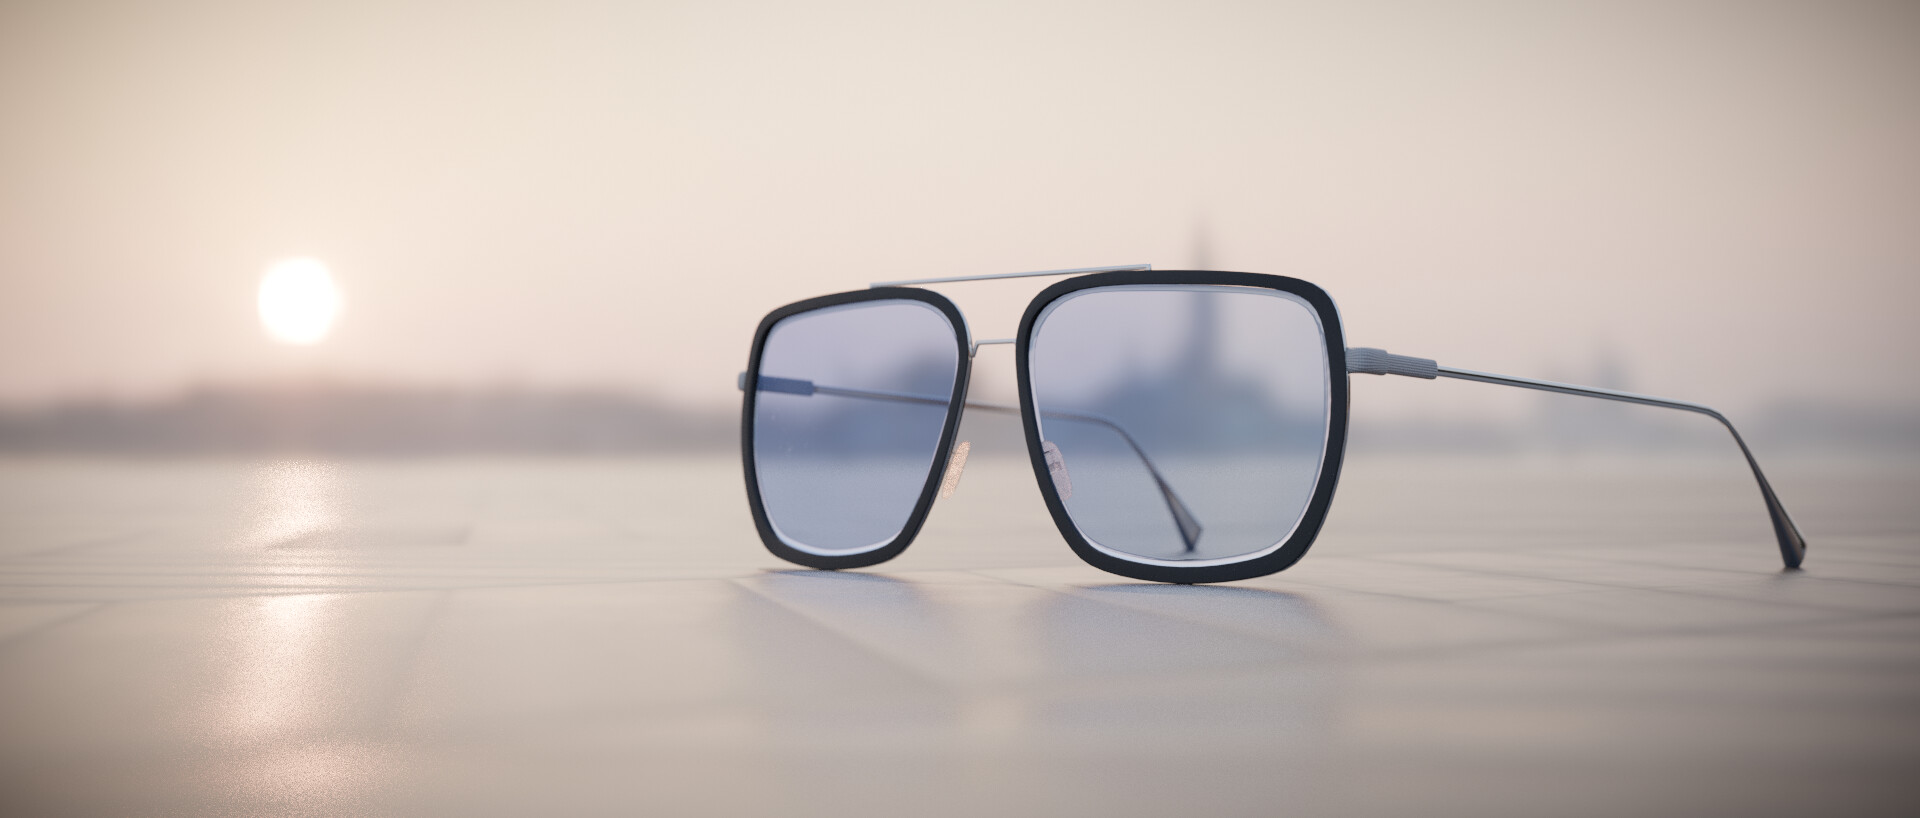 Joshua Palfrey Edith Glasses Make aesthetically accurate edith glasses from far from home/iw. joshua palfrey